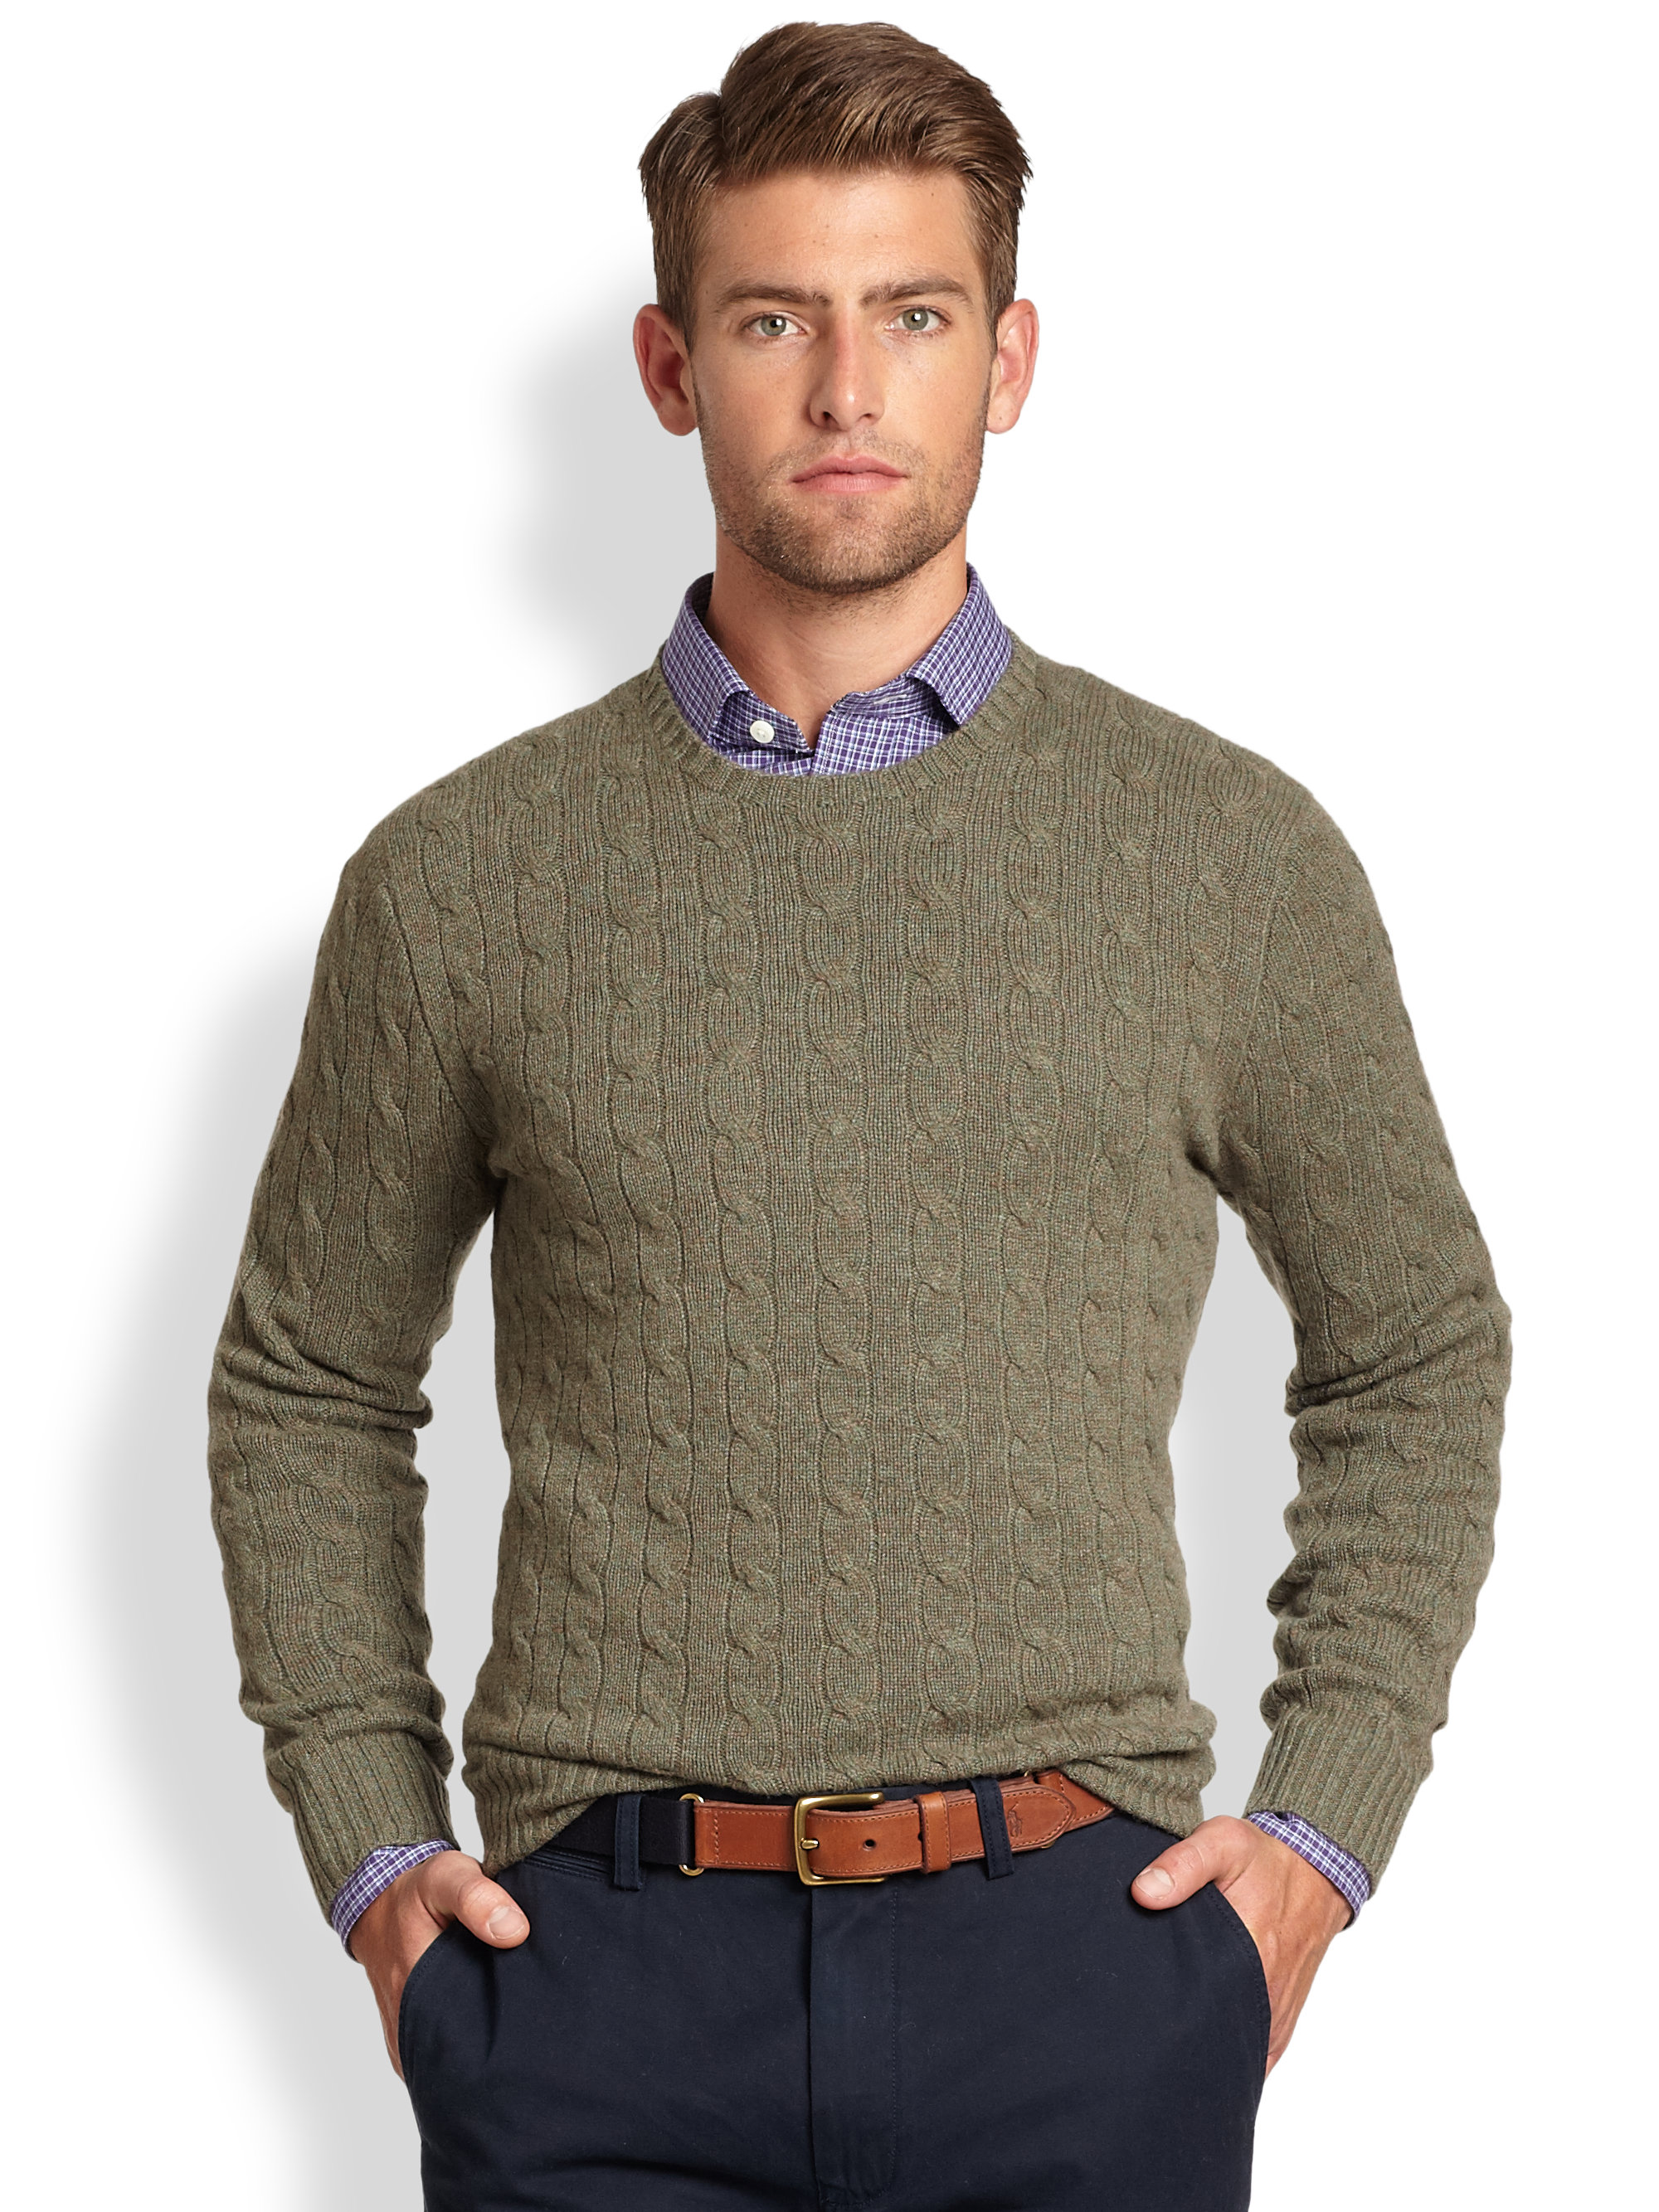 f4afe2bfaad2b3 Lyst - Polo Ralph Lauren Cable Knit Cashmere Crewneck Sweater in ...